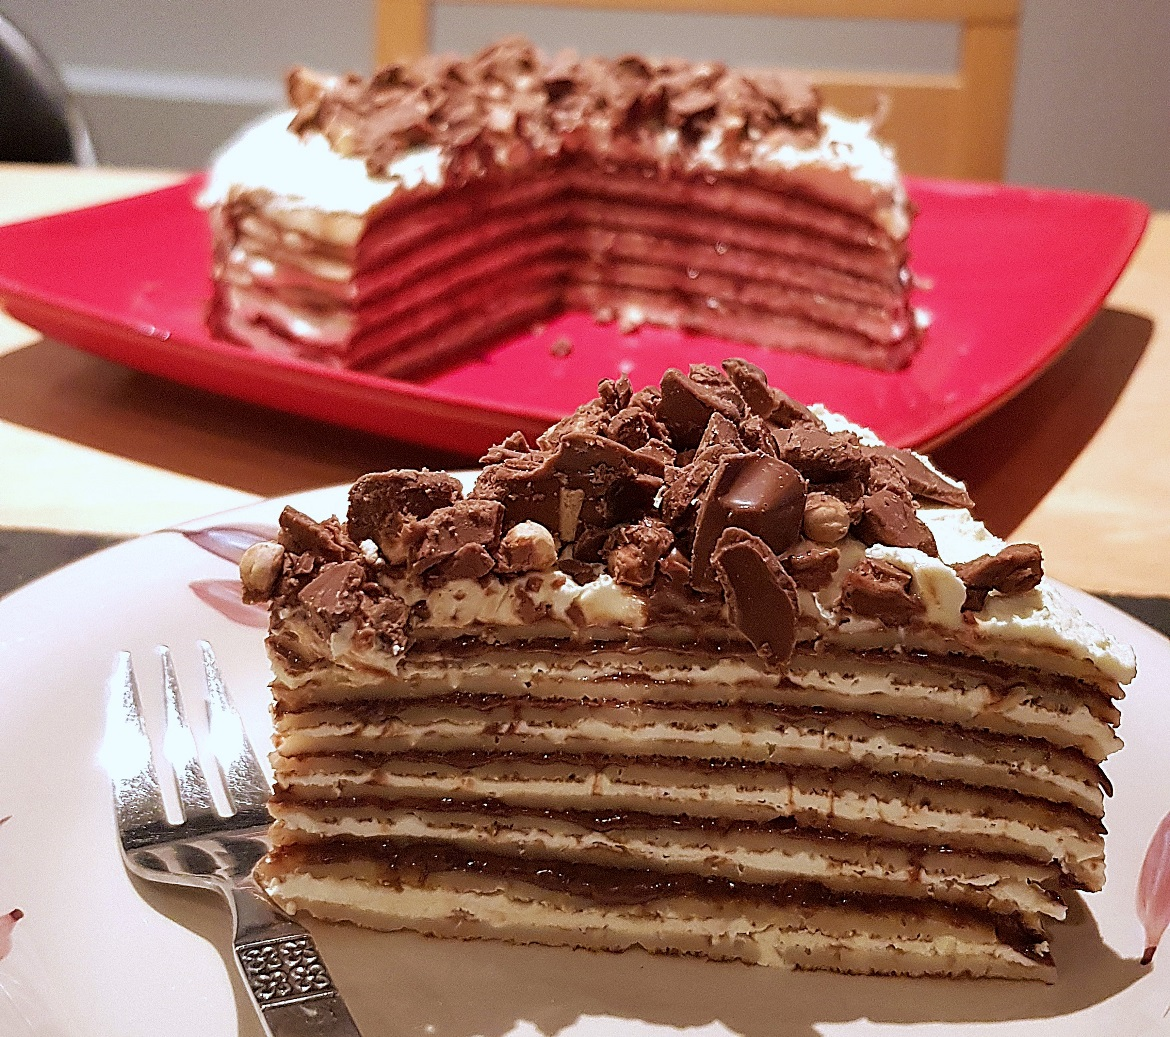 Crepe cake - November Monthly Recap by BeckyBecky Blogs